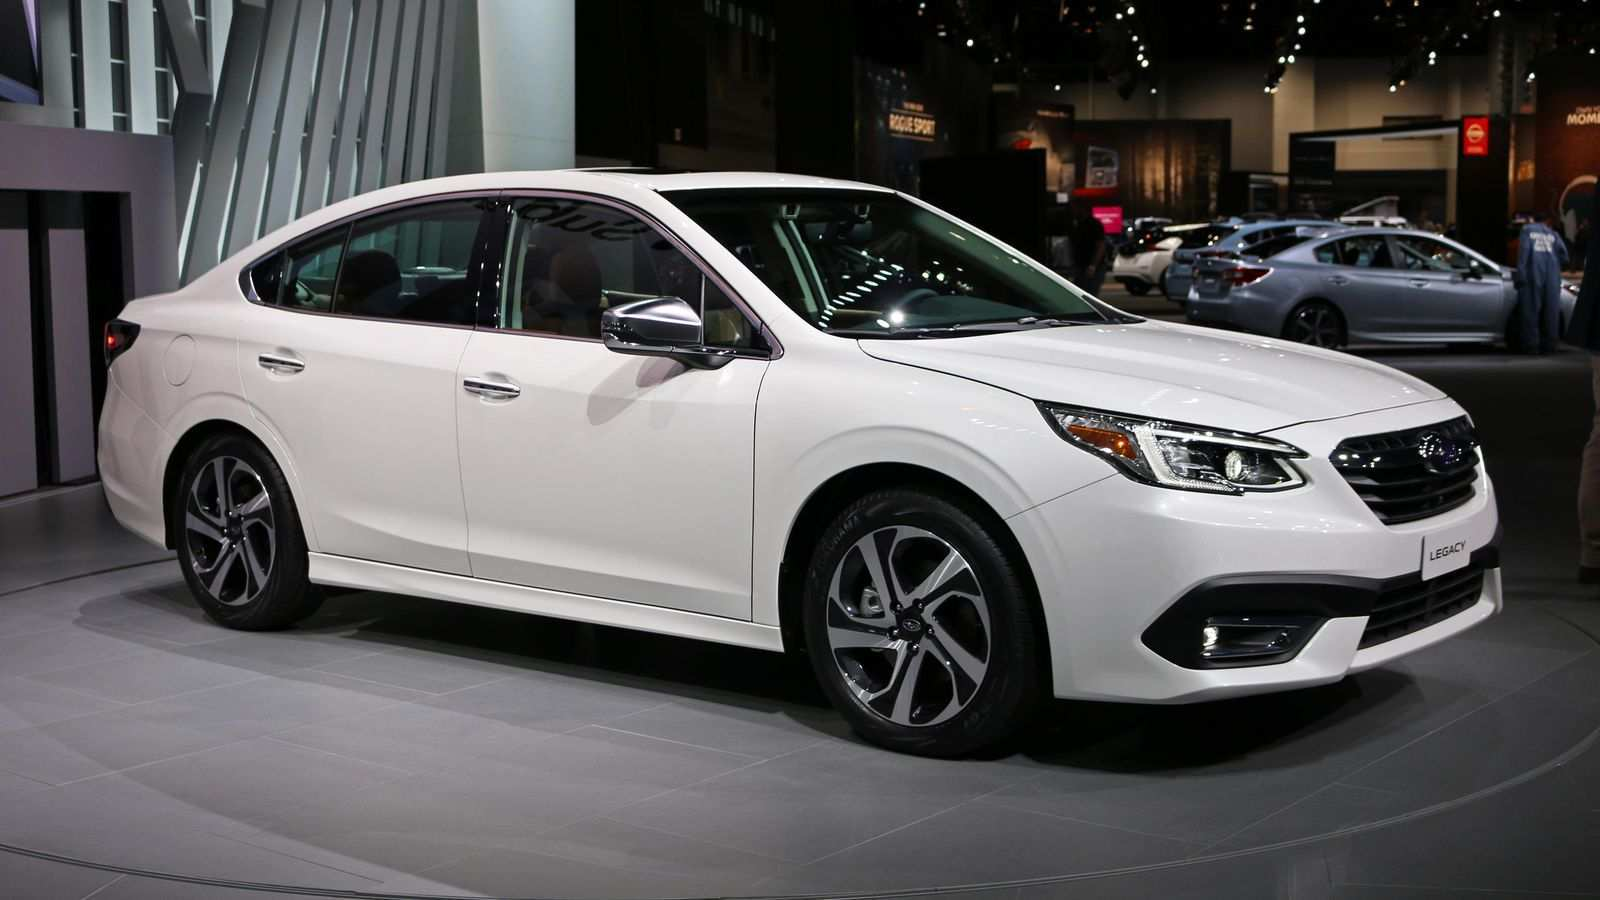 57 The Best 2020 Subaru Legacy Price New Concept